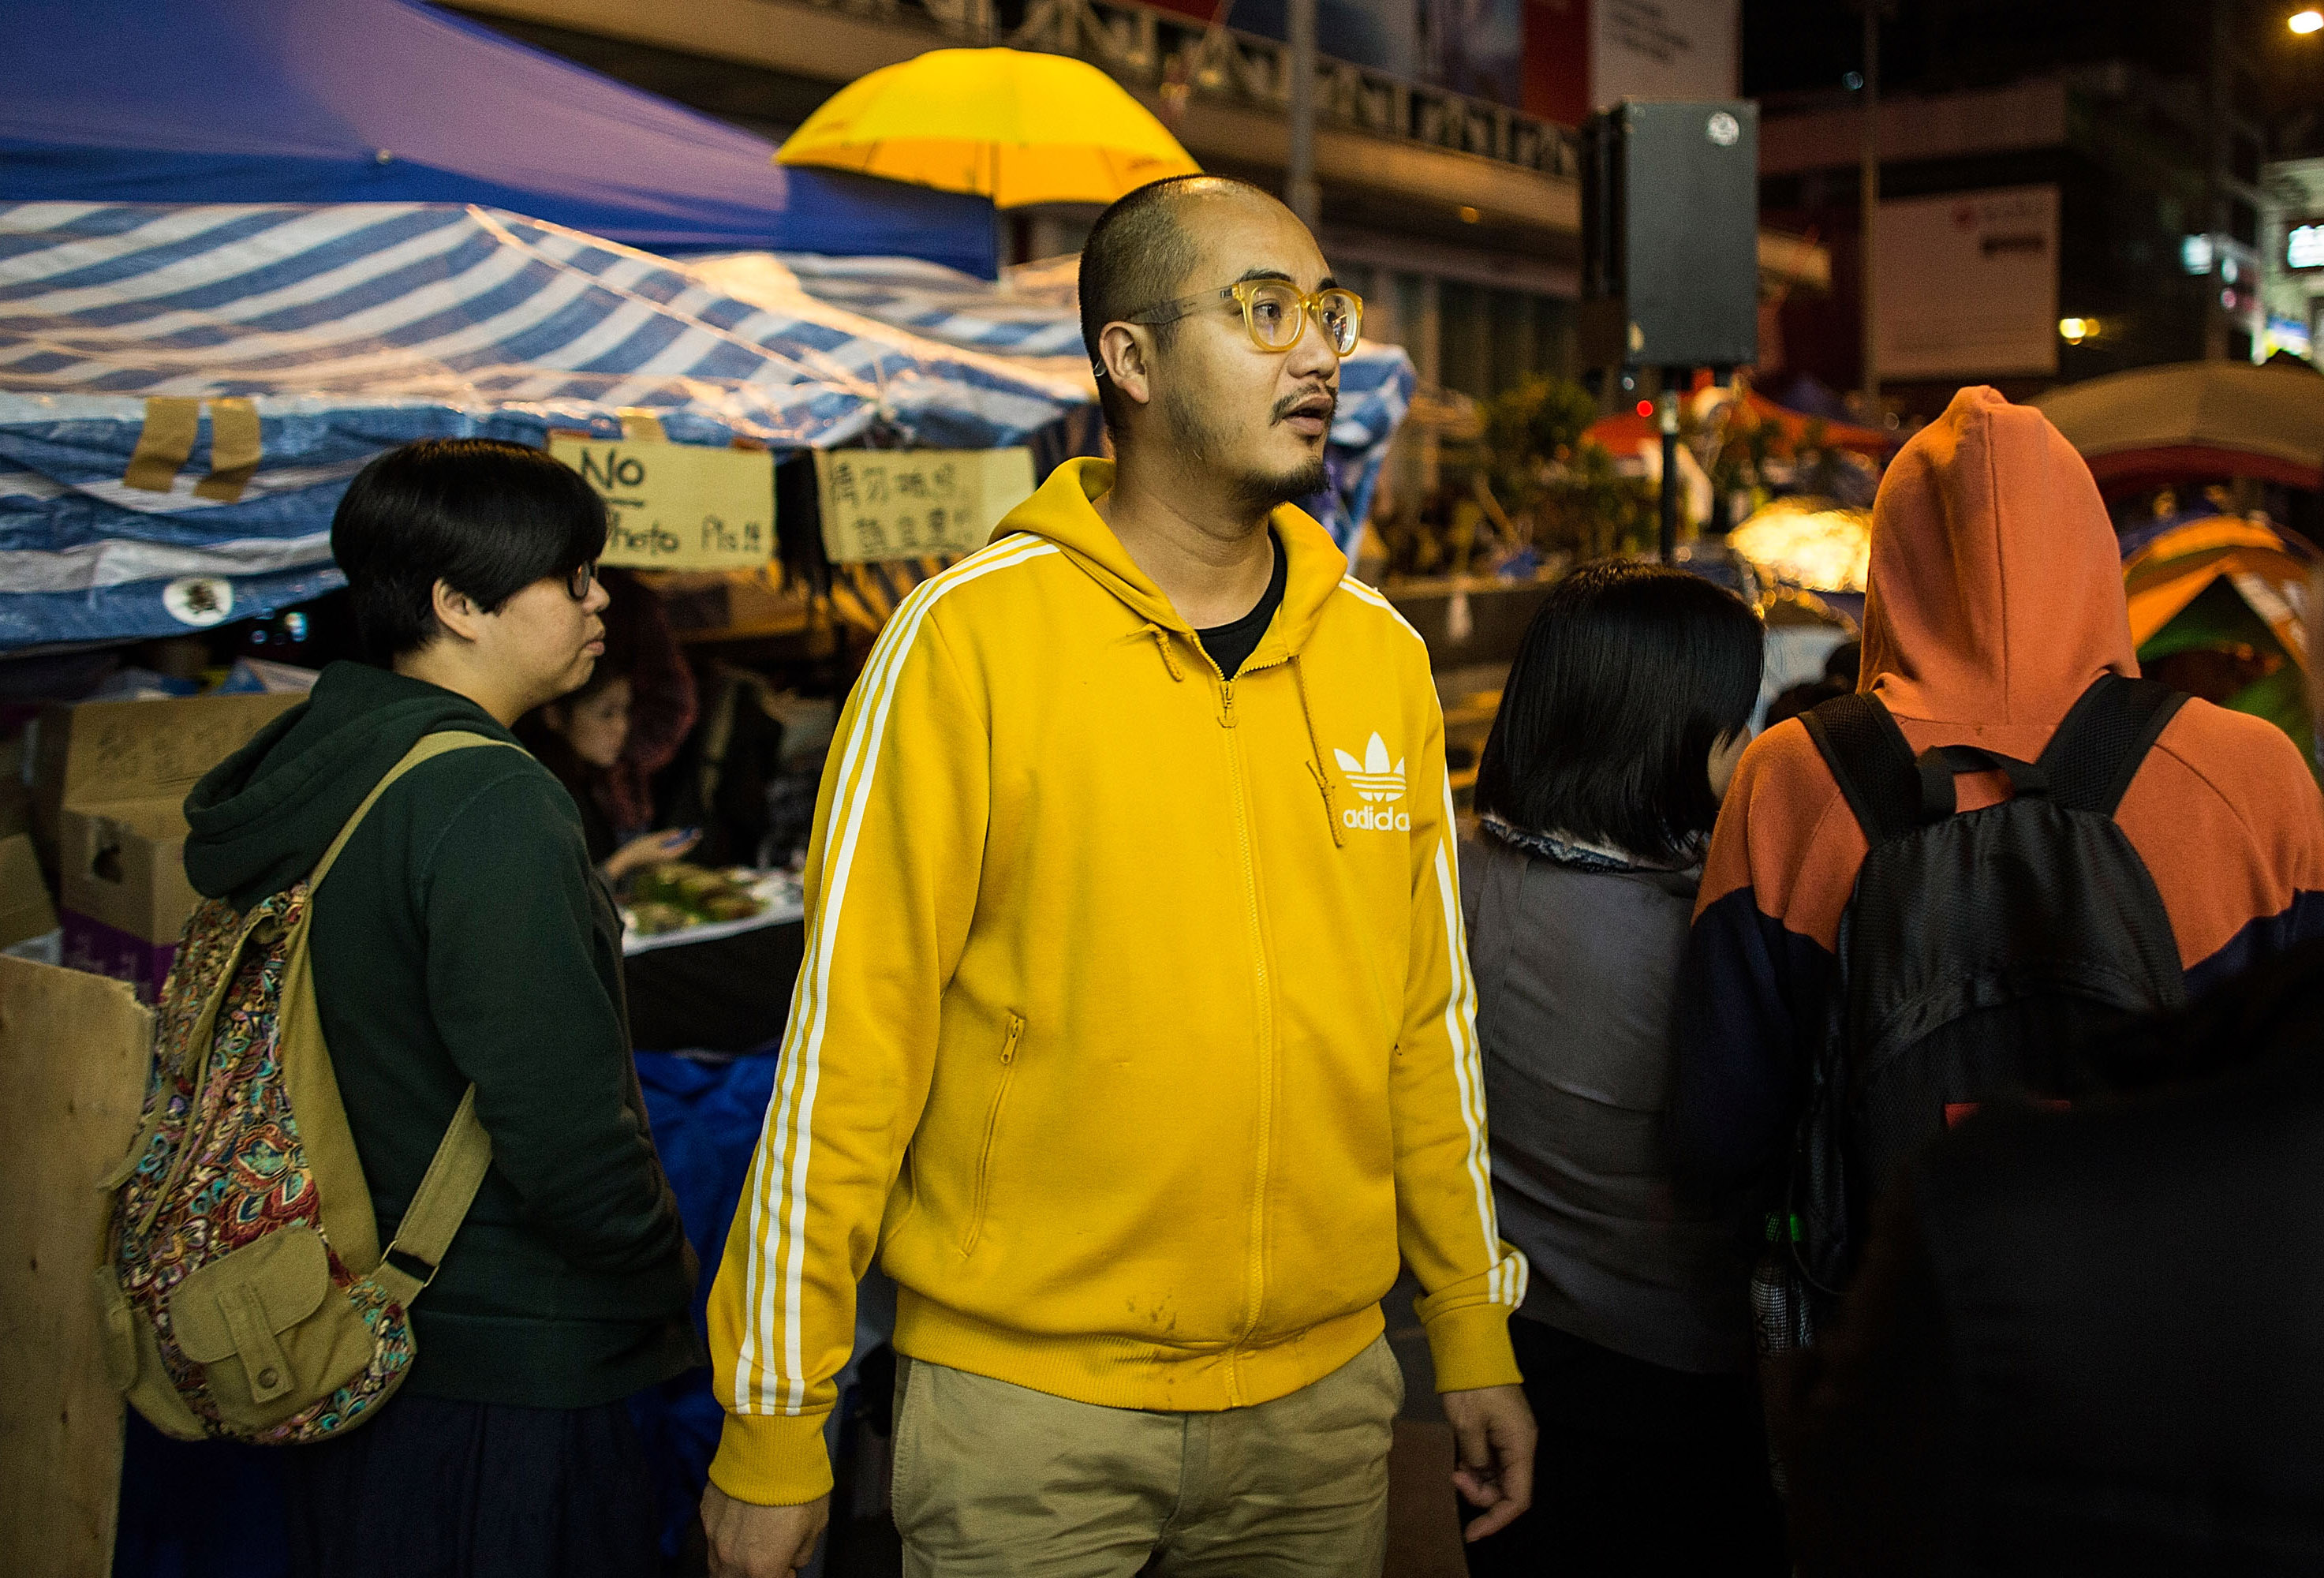 Activist Wong Yeung-tat attends a protest at the Occupy Mongkok Occupy site on Nov. 21, 2014, in Hong Kong. He was arrested on Dec. 11 on multiple charges of unlawful assembly